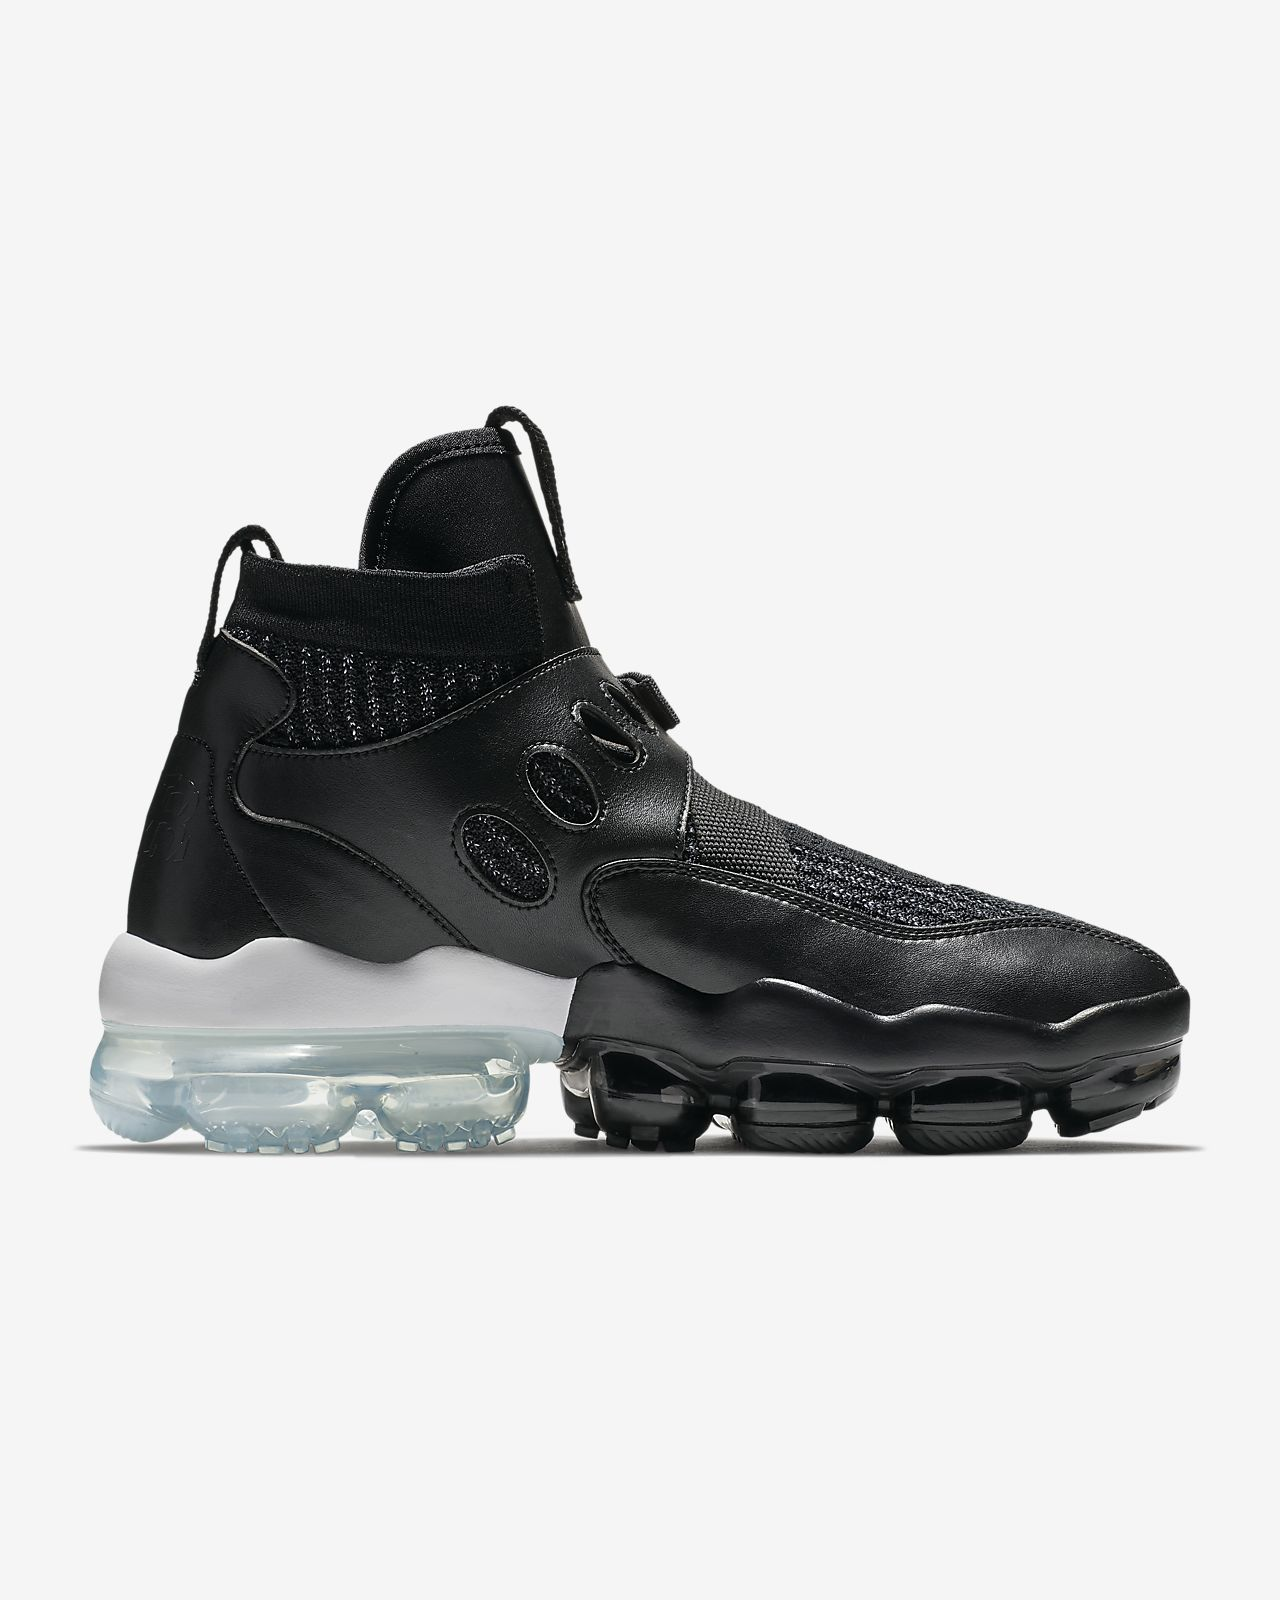 84b197be7270 Nike Air VaporMax Premier Flyknit Men s Shoe. Nike.com GB